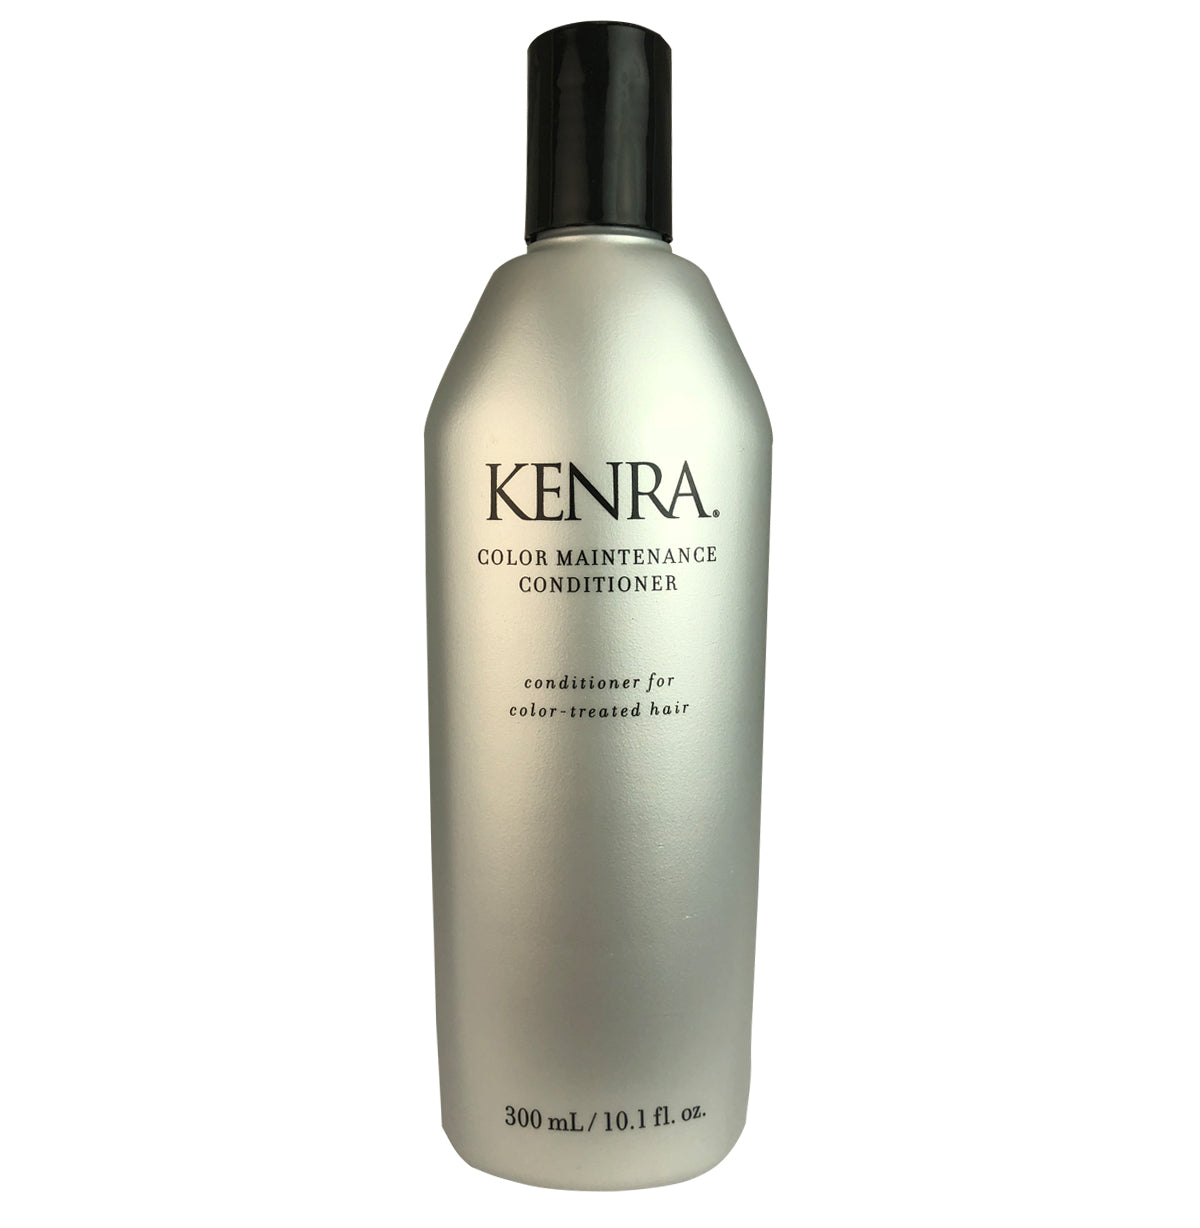 Kenra Color Maintenance Conditioner for Colored Treated Hair  10.1 oz